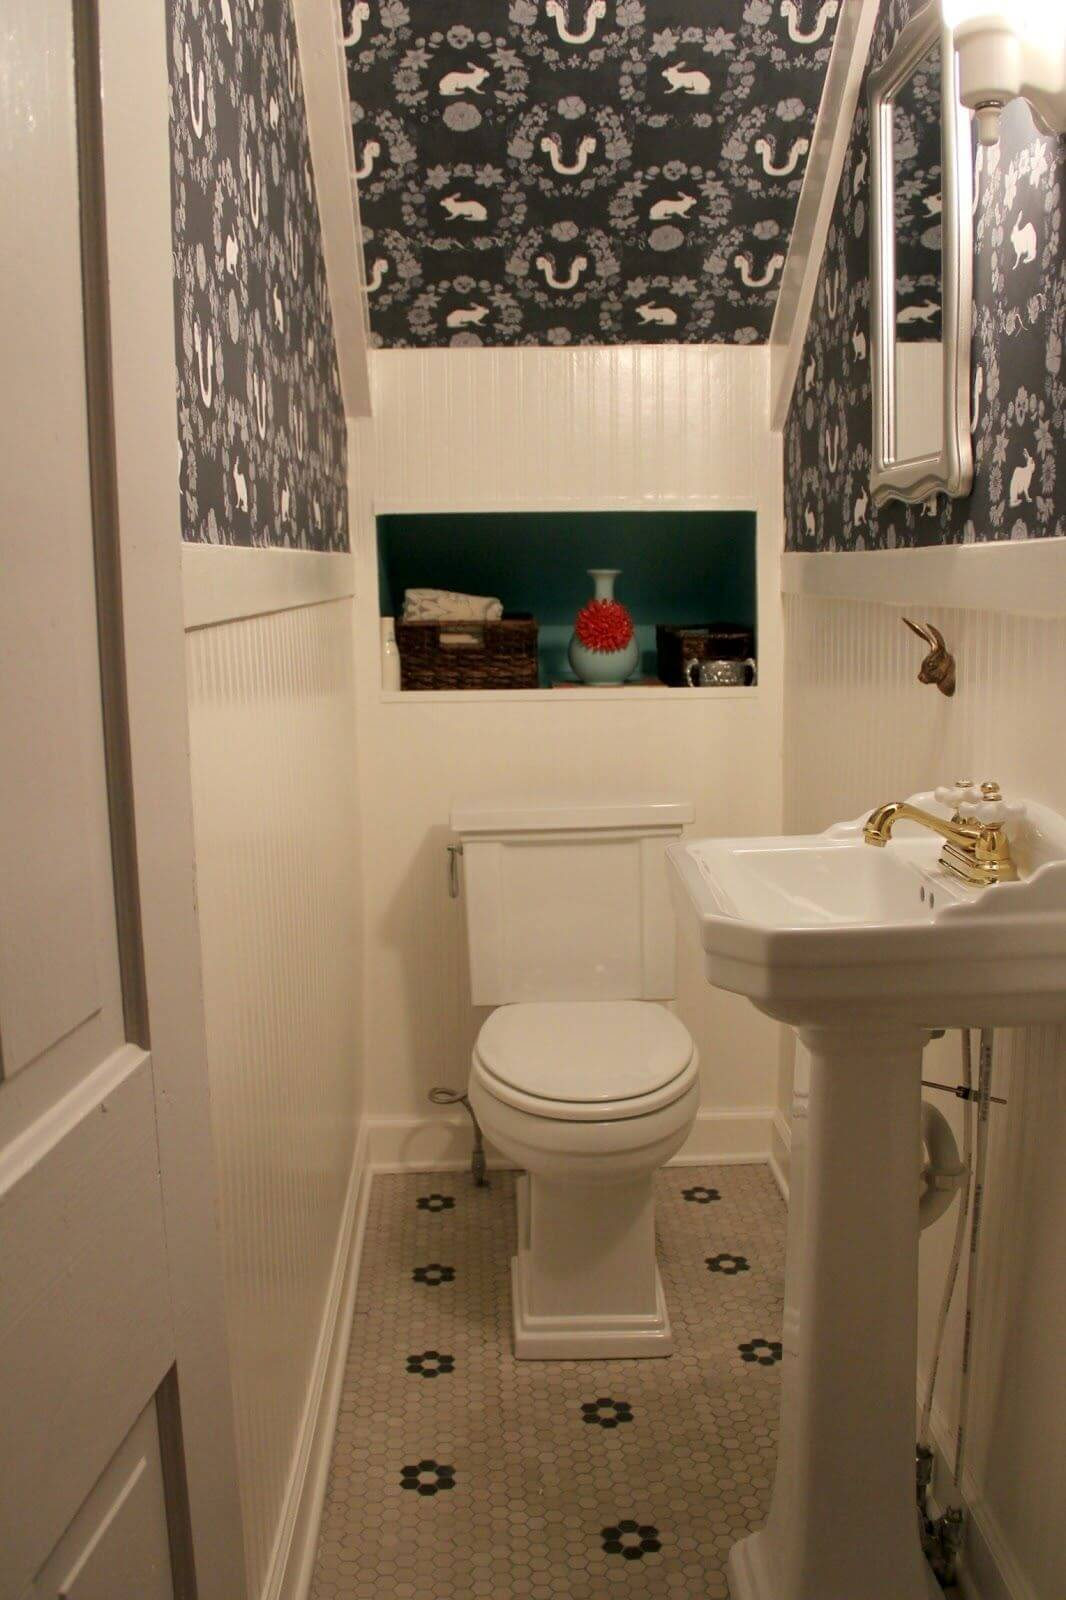 Toilet Room Designs: 18 Best Powder Room Ideas And Designs For 2020